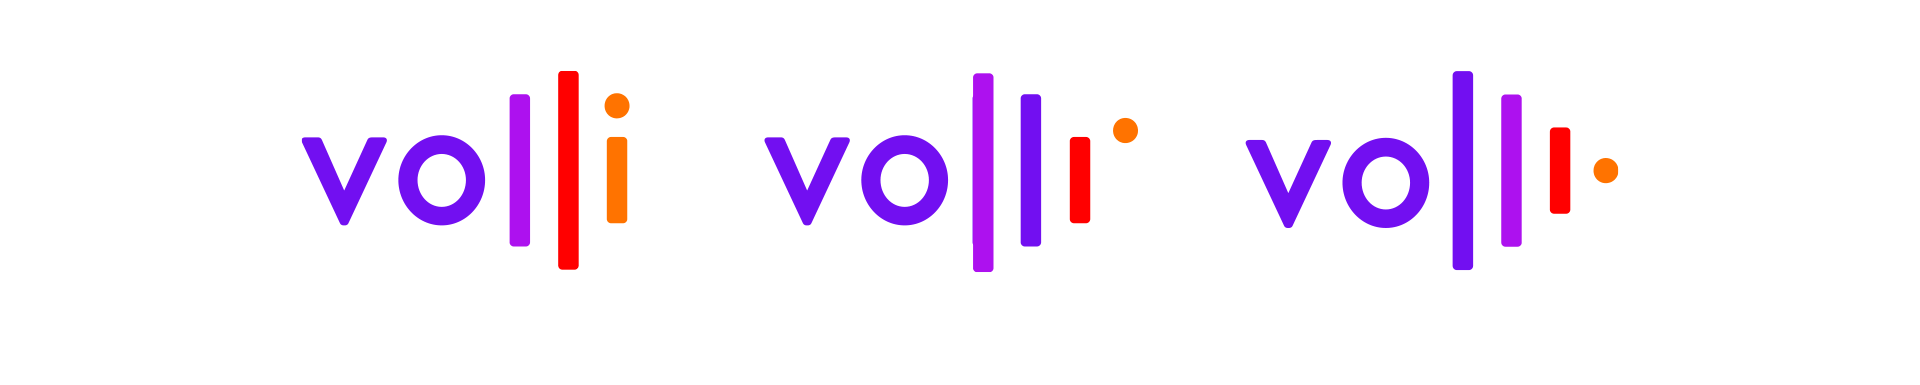 volli_animation